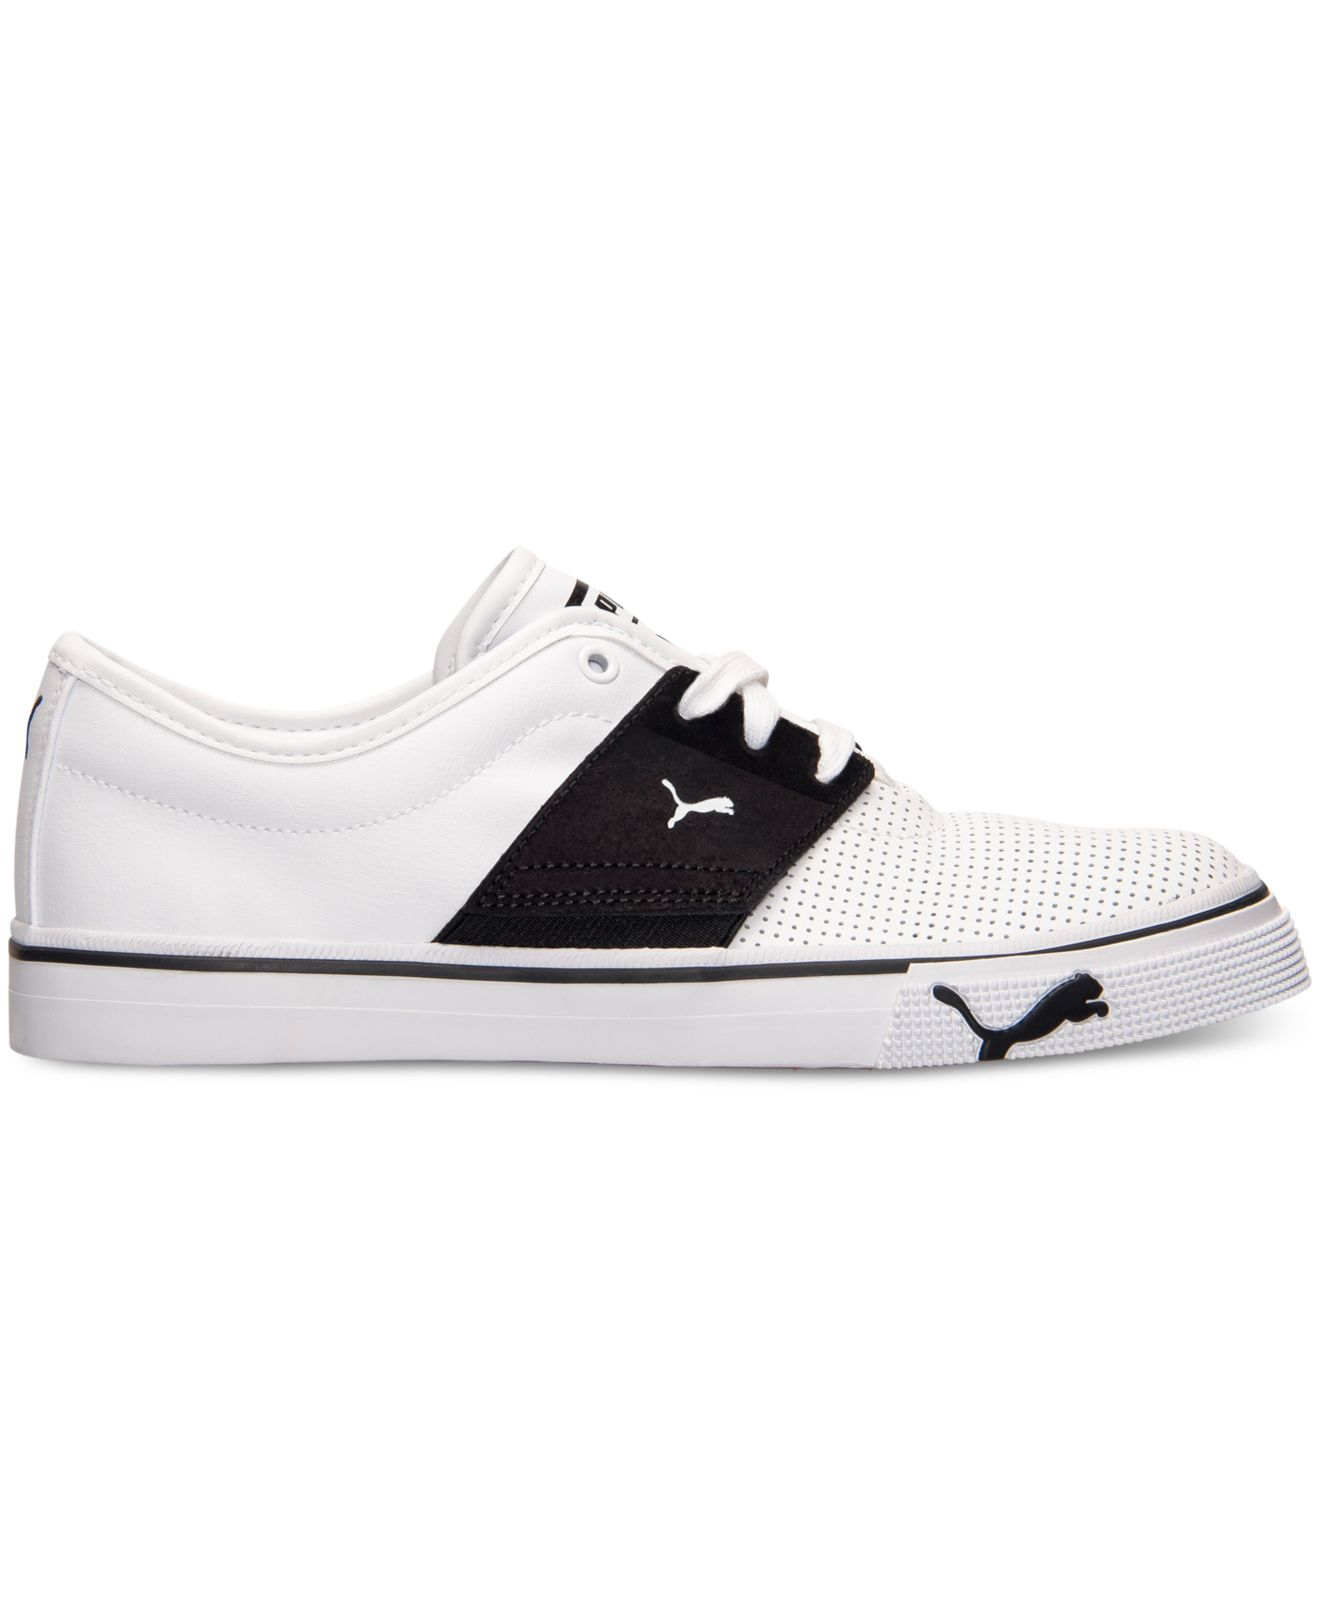 ... spain lyst puma mens el ace casual sneakers from finish line in white  5cfdf 6859f ed972d287